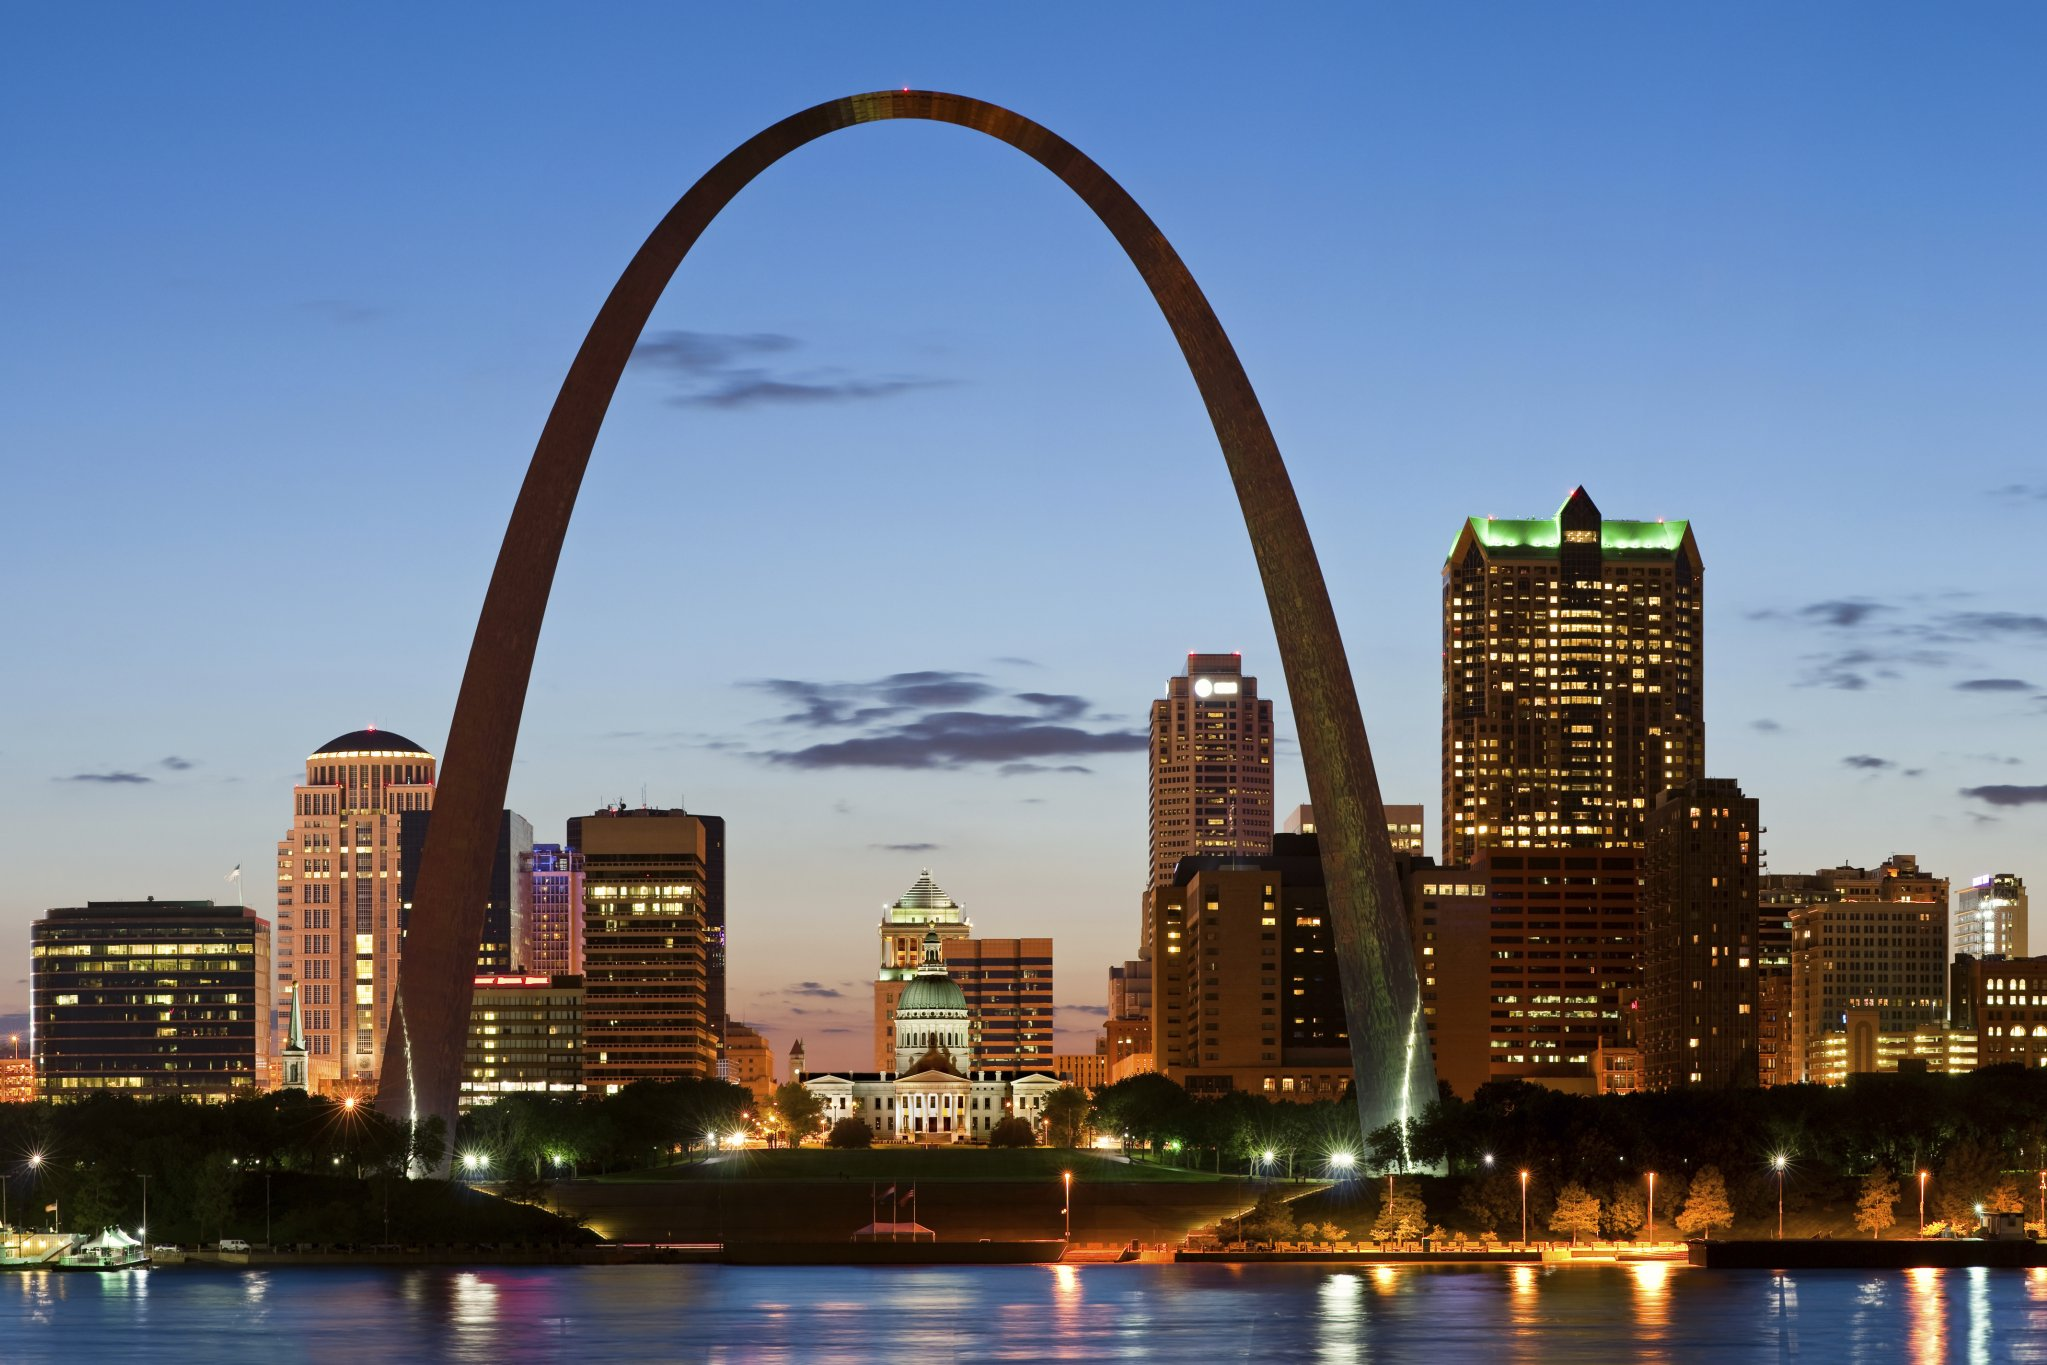 Saint Louis Missouri